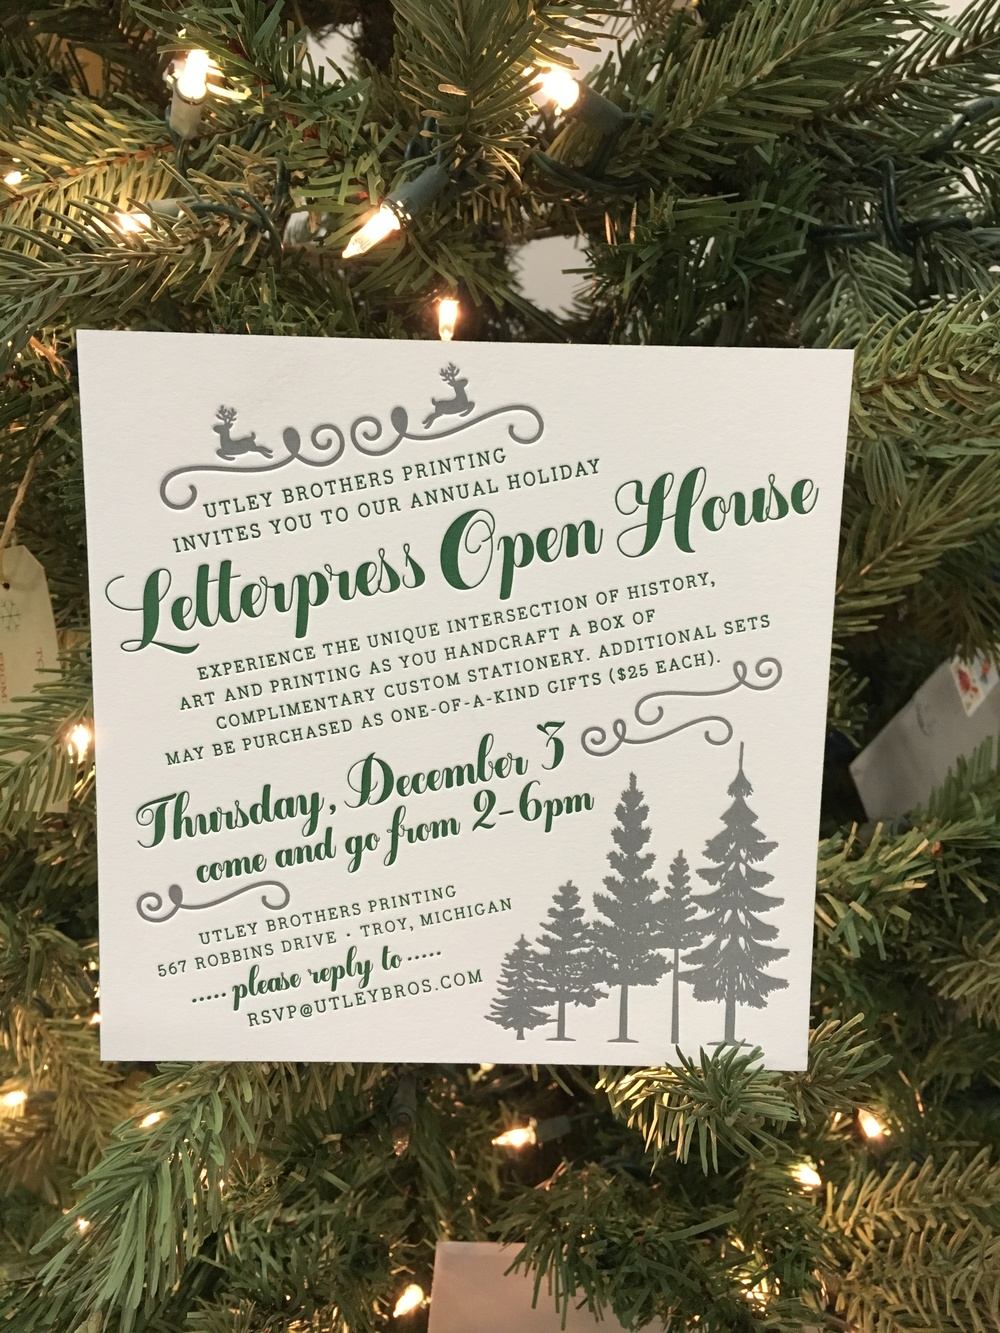 Christmas Letterpress Event was Merry and Bright — Atlantic Press